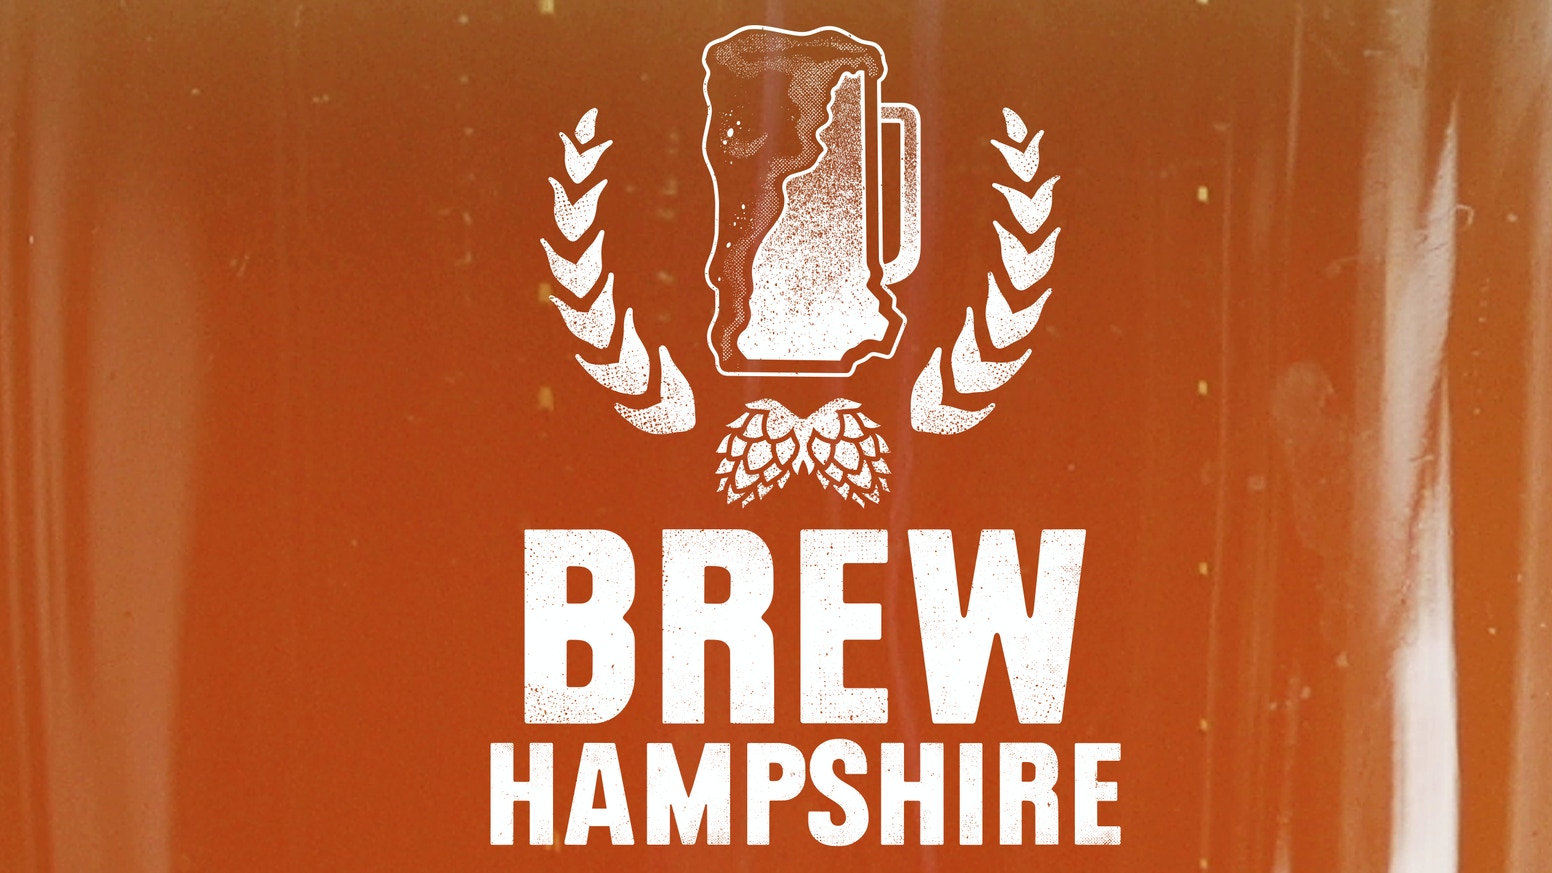 Brew Hampshire is a documentary about the explosion of craft brew and beer culture in New Hampshire.